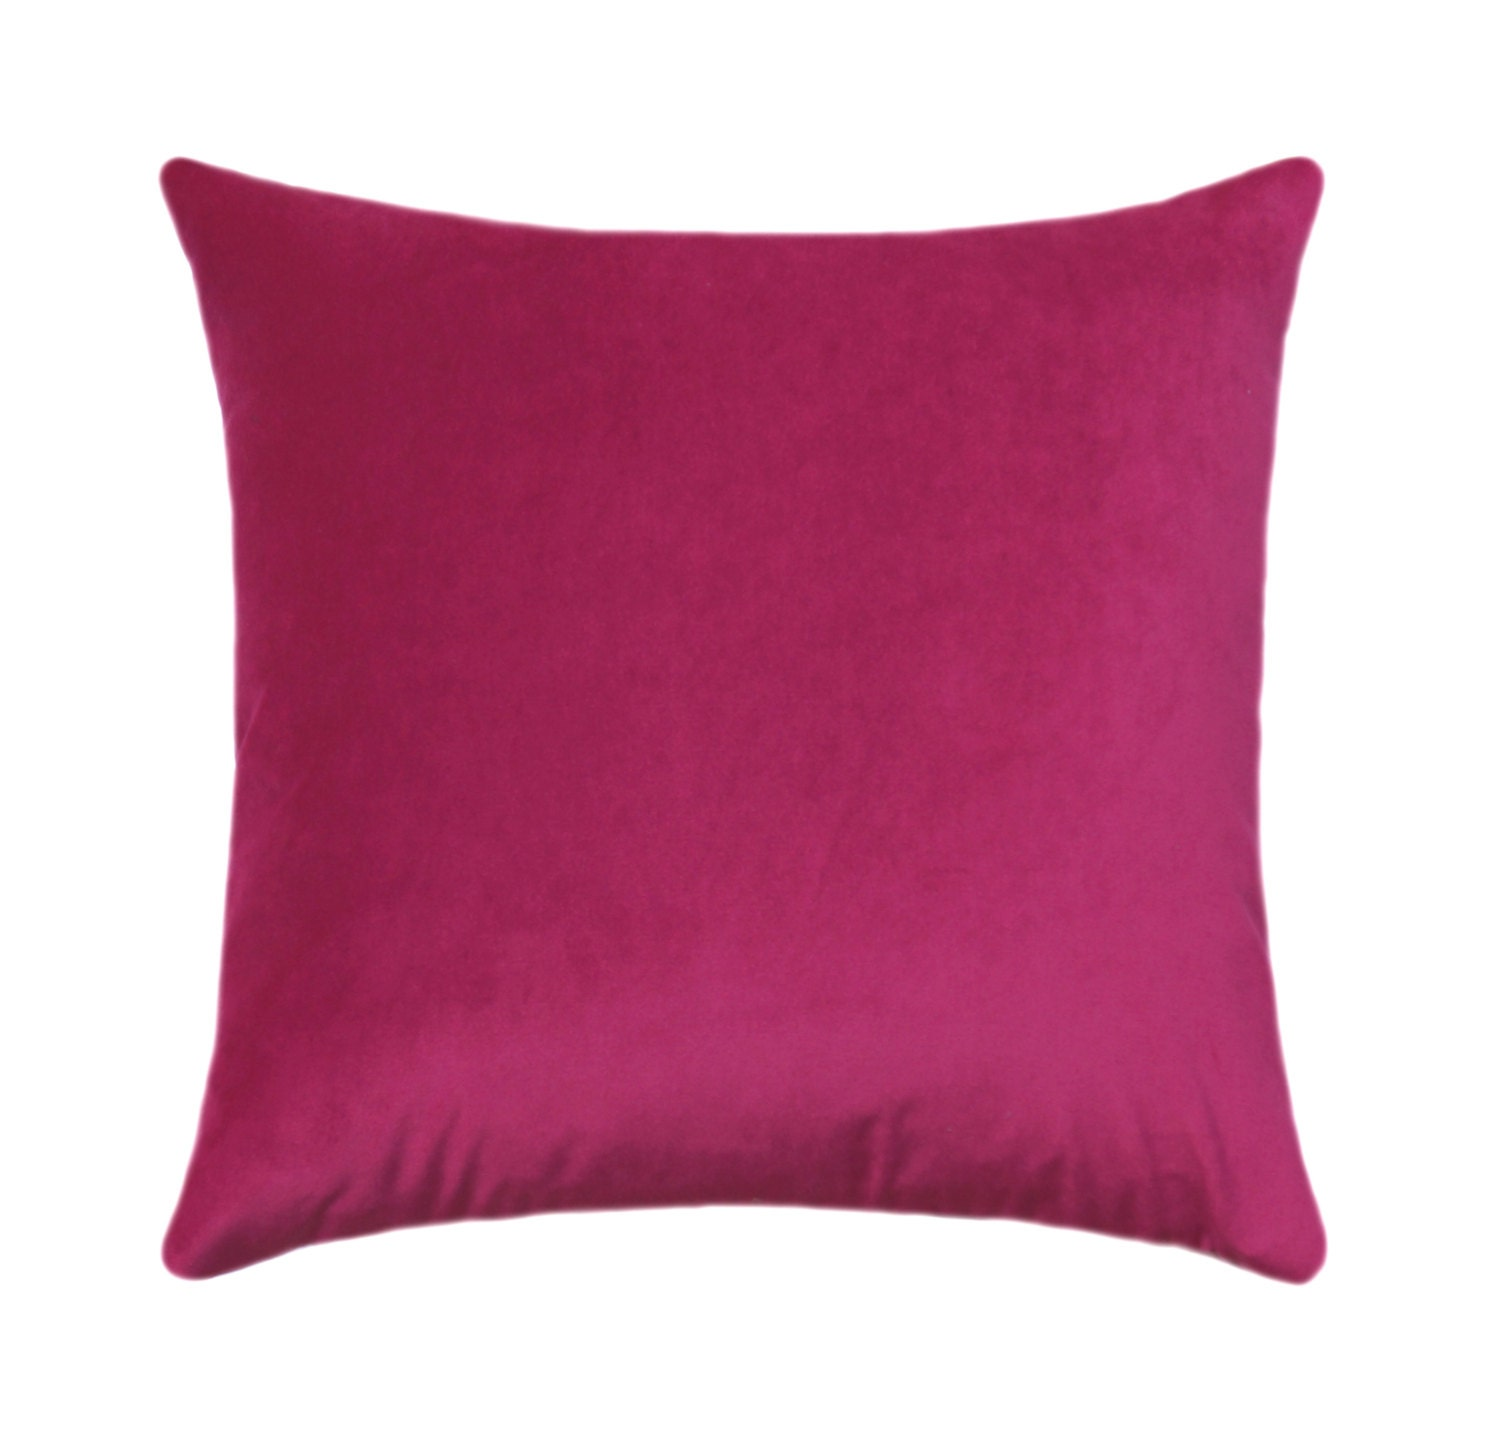 hot pink pillow cover velvet throw pillow pink velvet. Black Bedroom Furniture Sets. Home Design Ideas